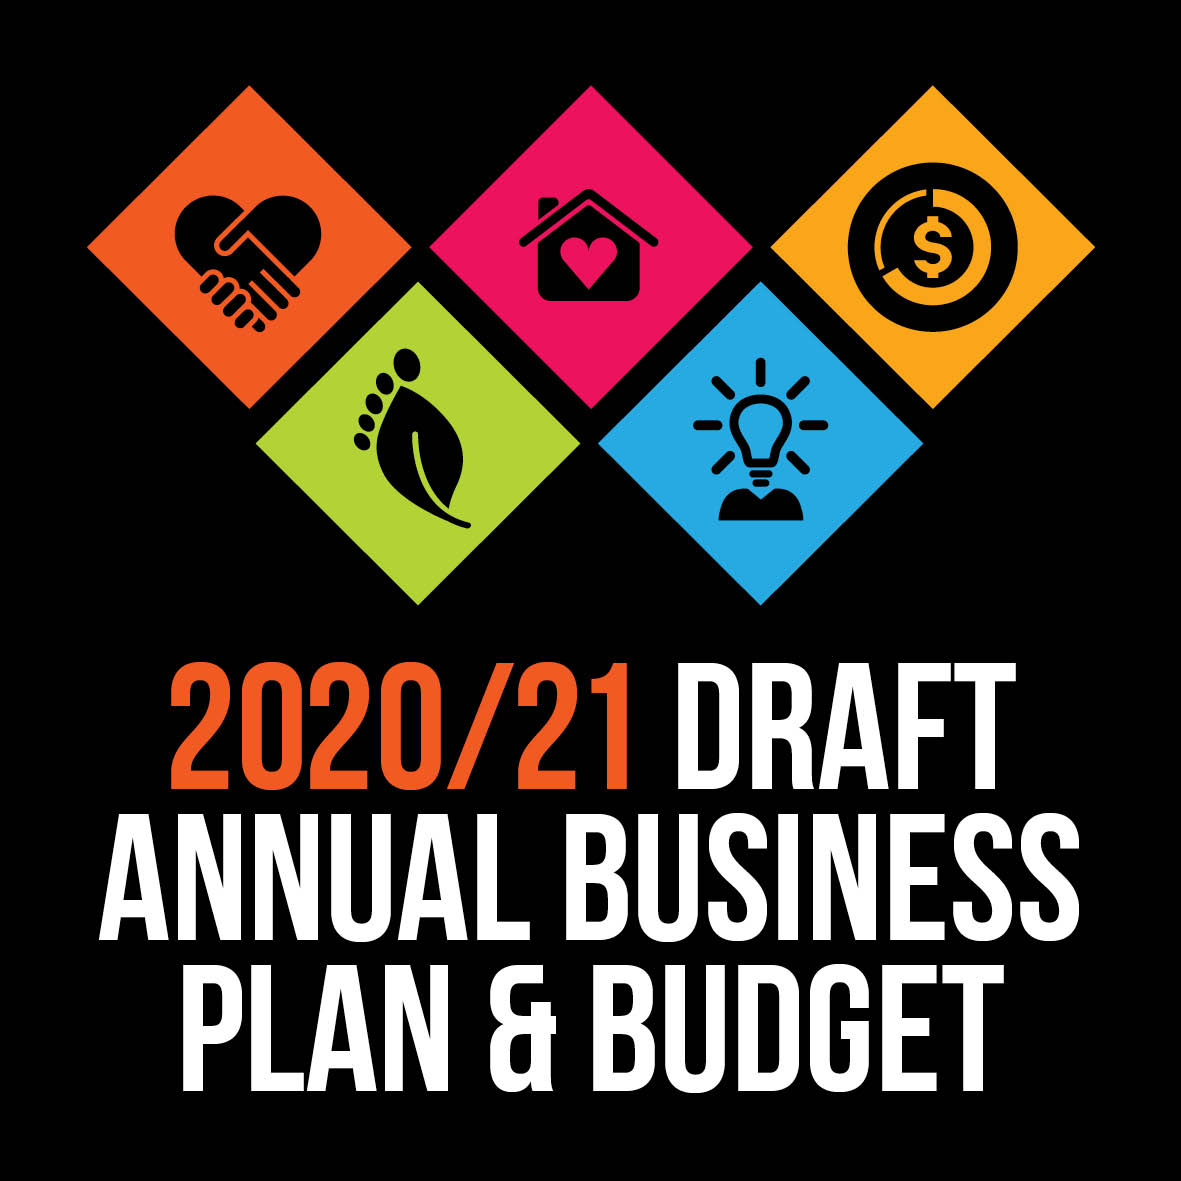 Annual Business Plan 2020/21